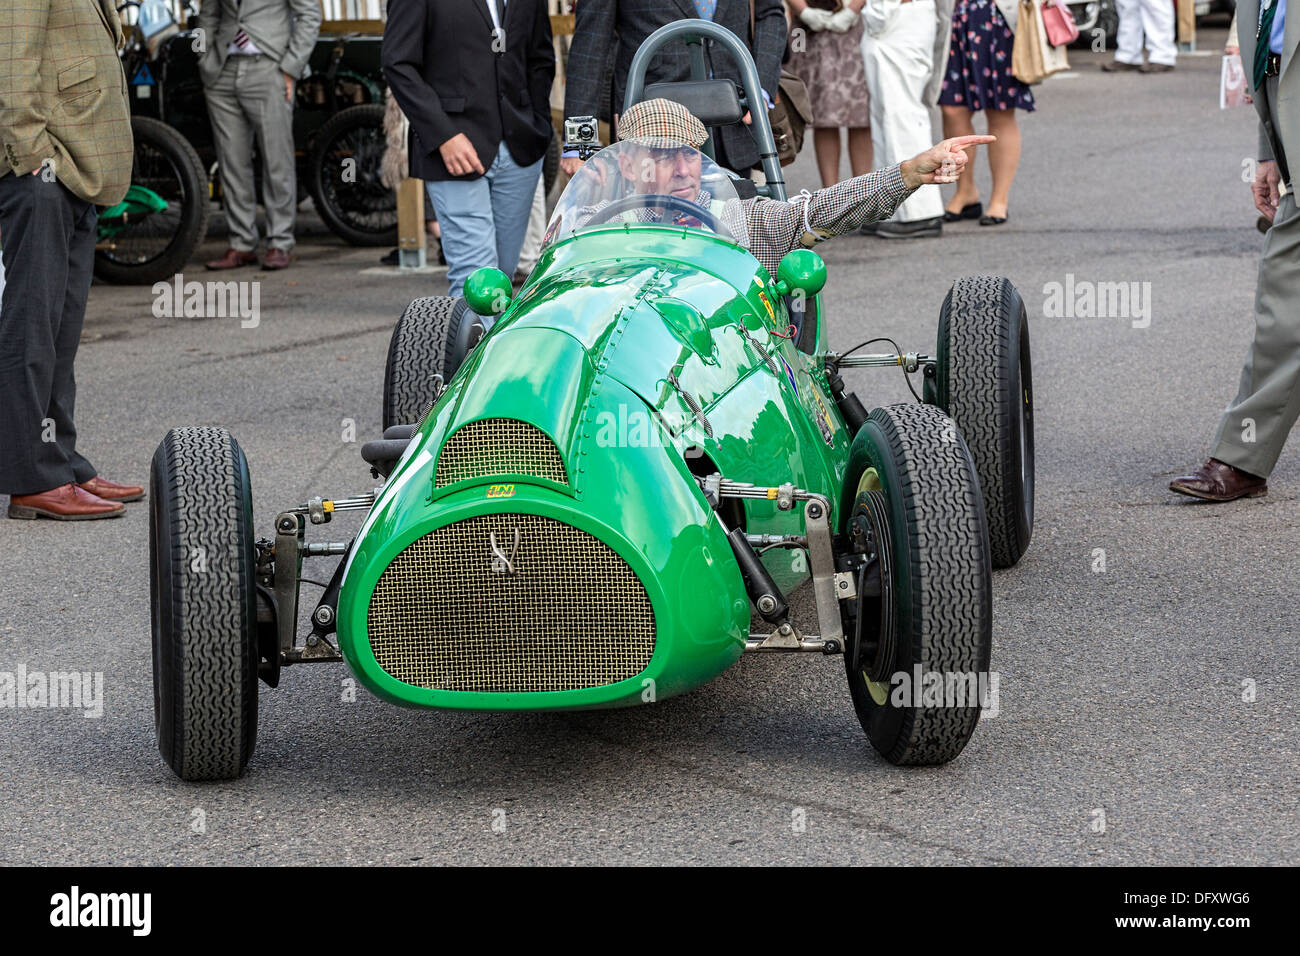 1952 Cooper-Bristol MkII in the paddock at the 2013 Goodwood Revival, Sussex, UK. - Stock Image